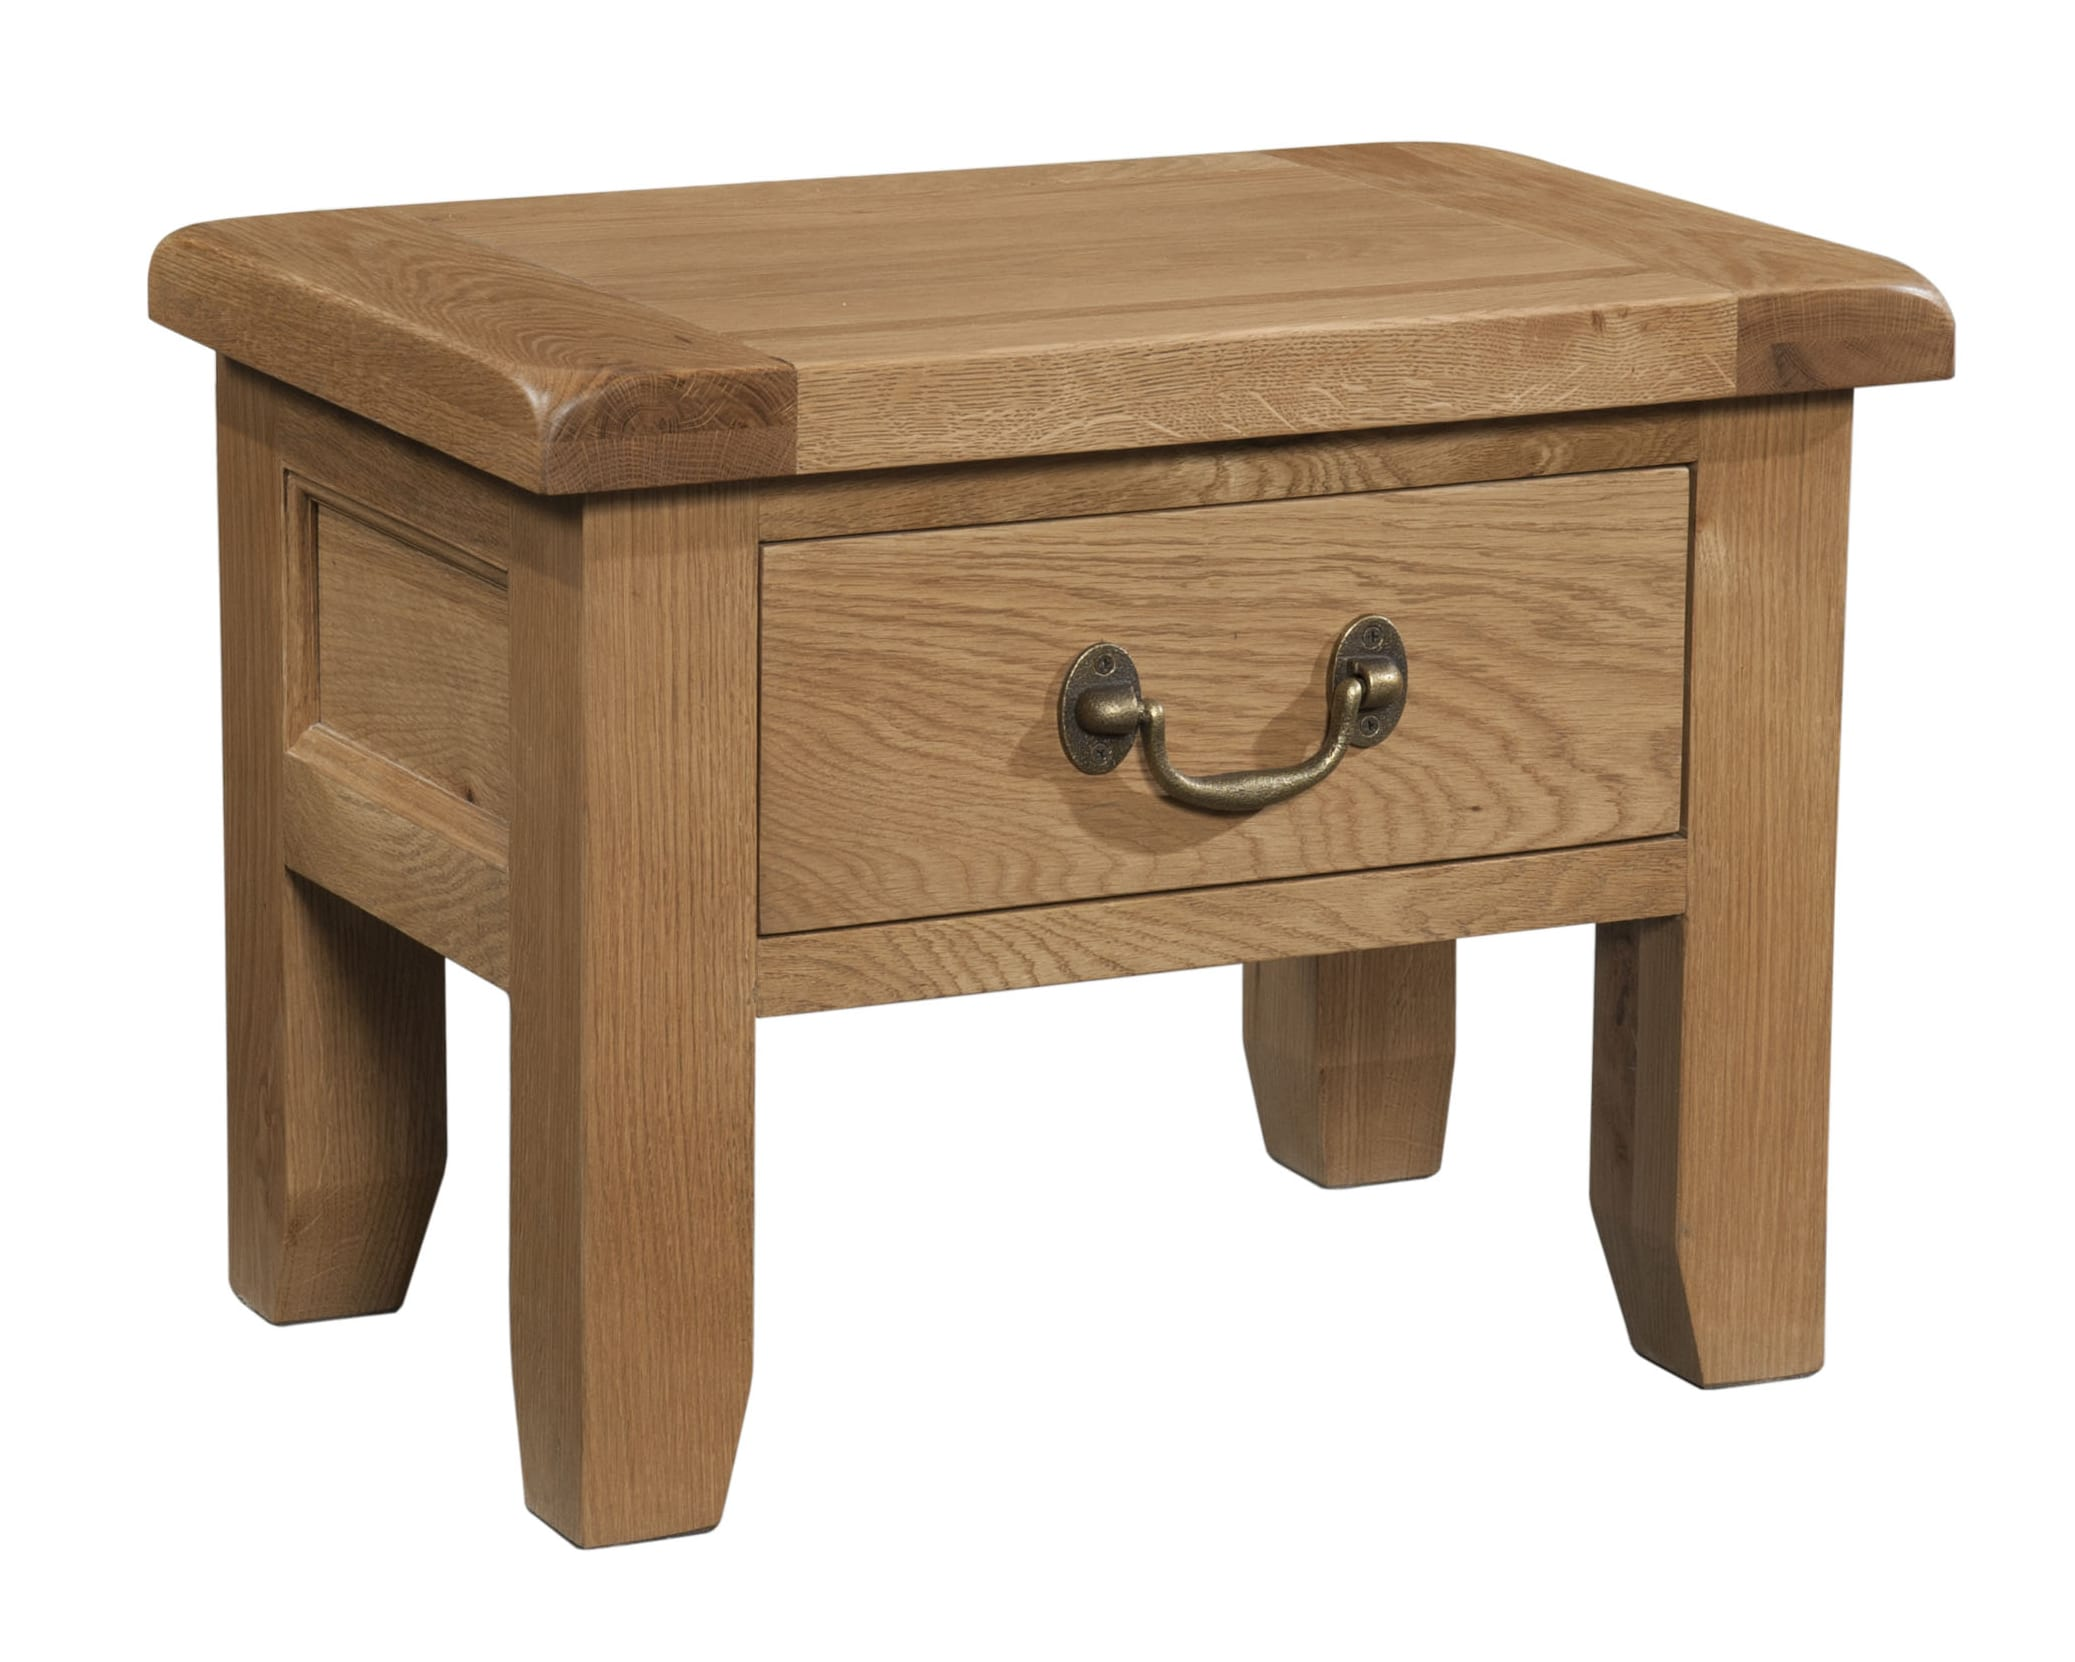 SOM006 Somerset oak side table with drawer